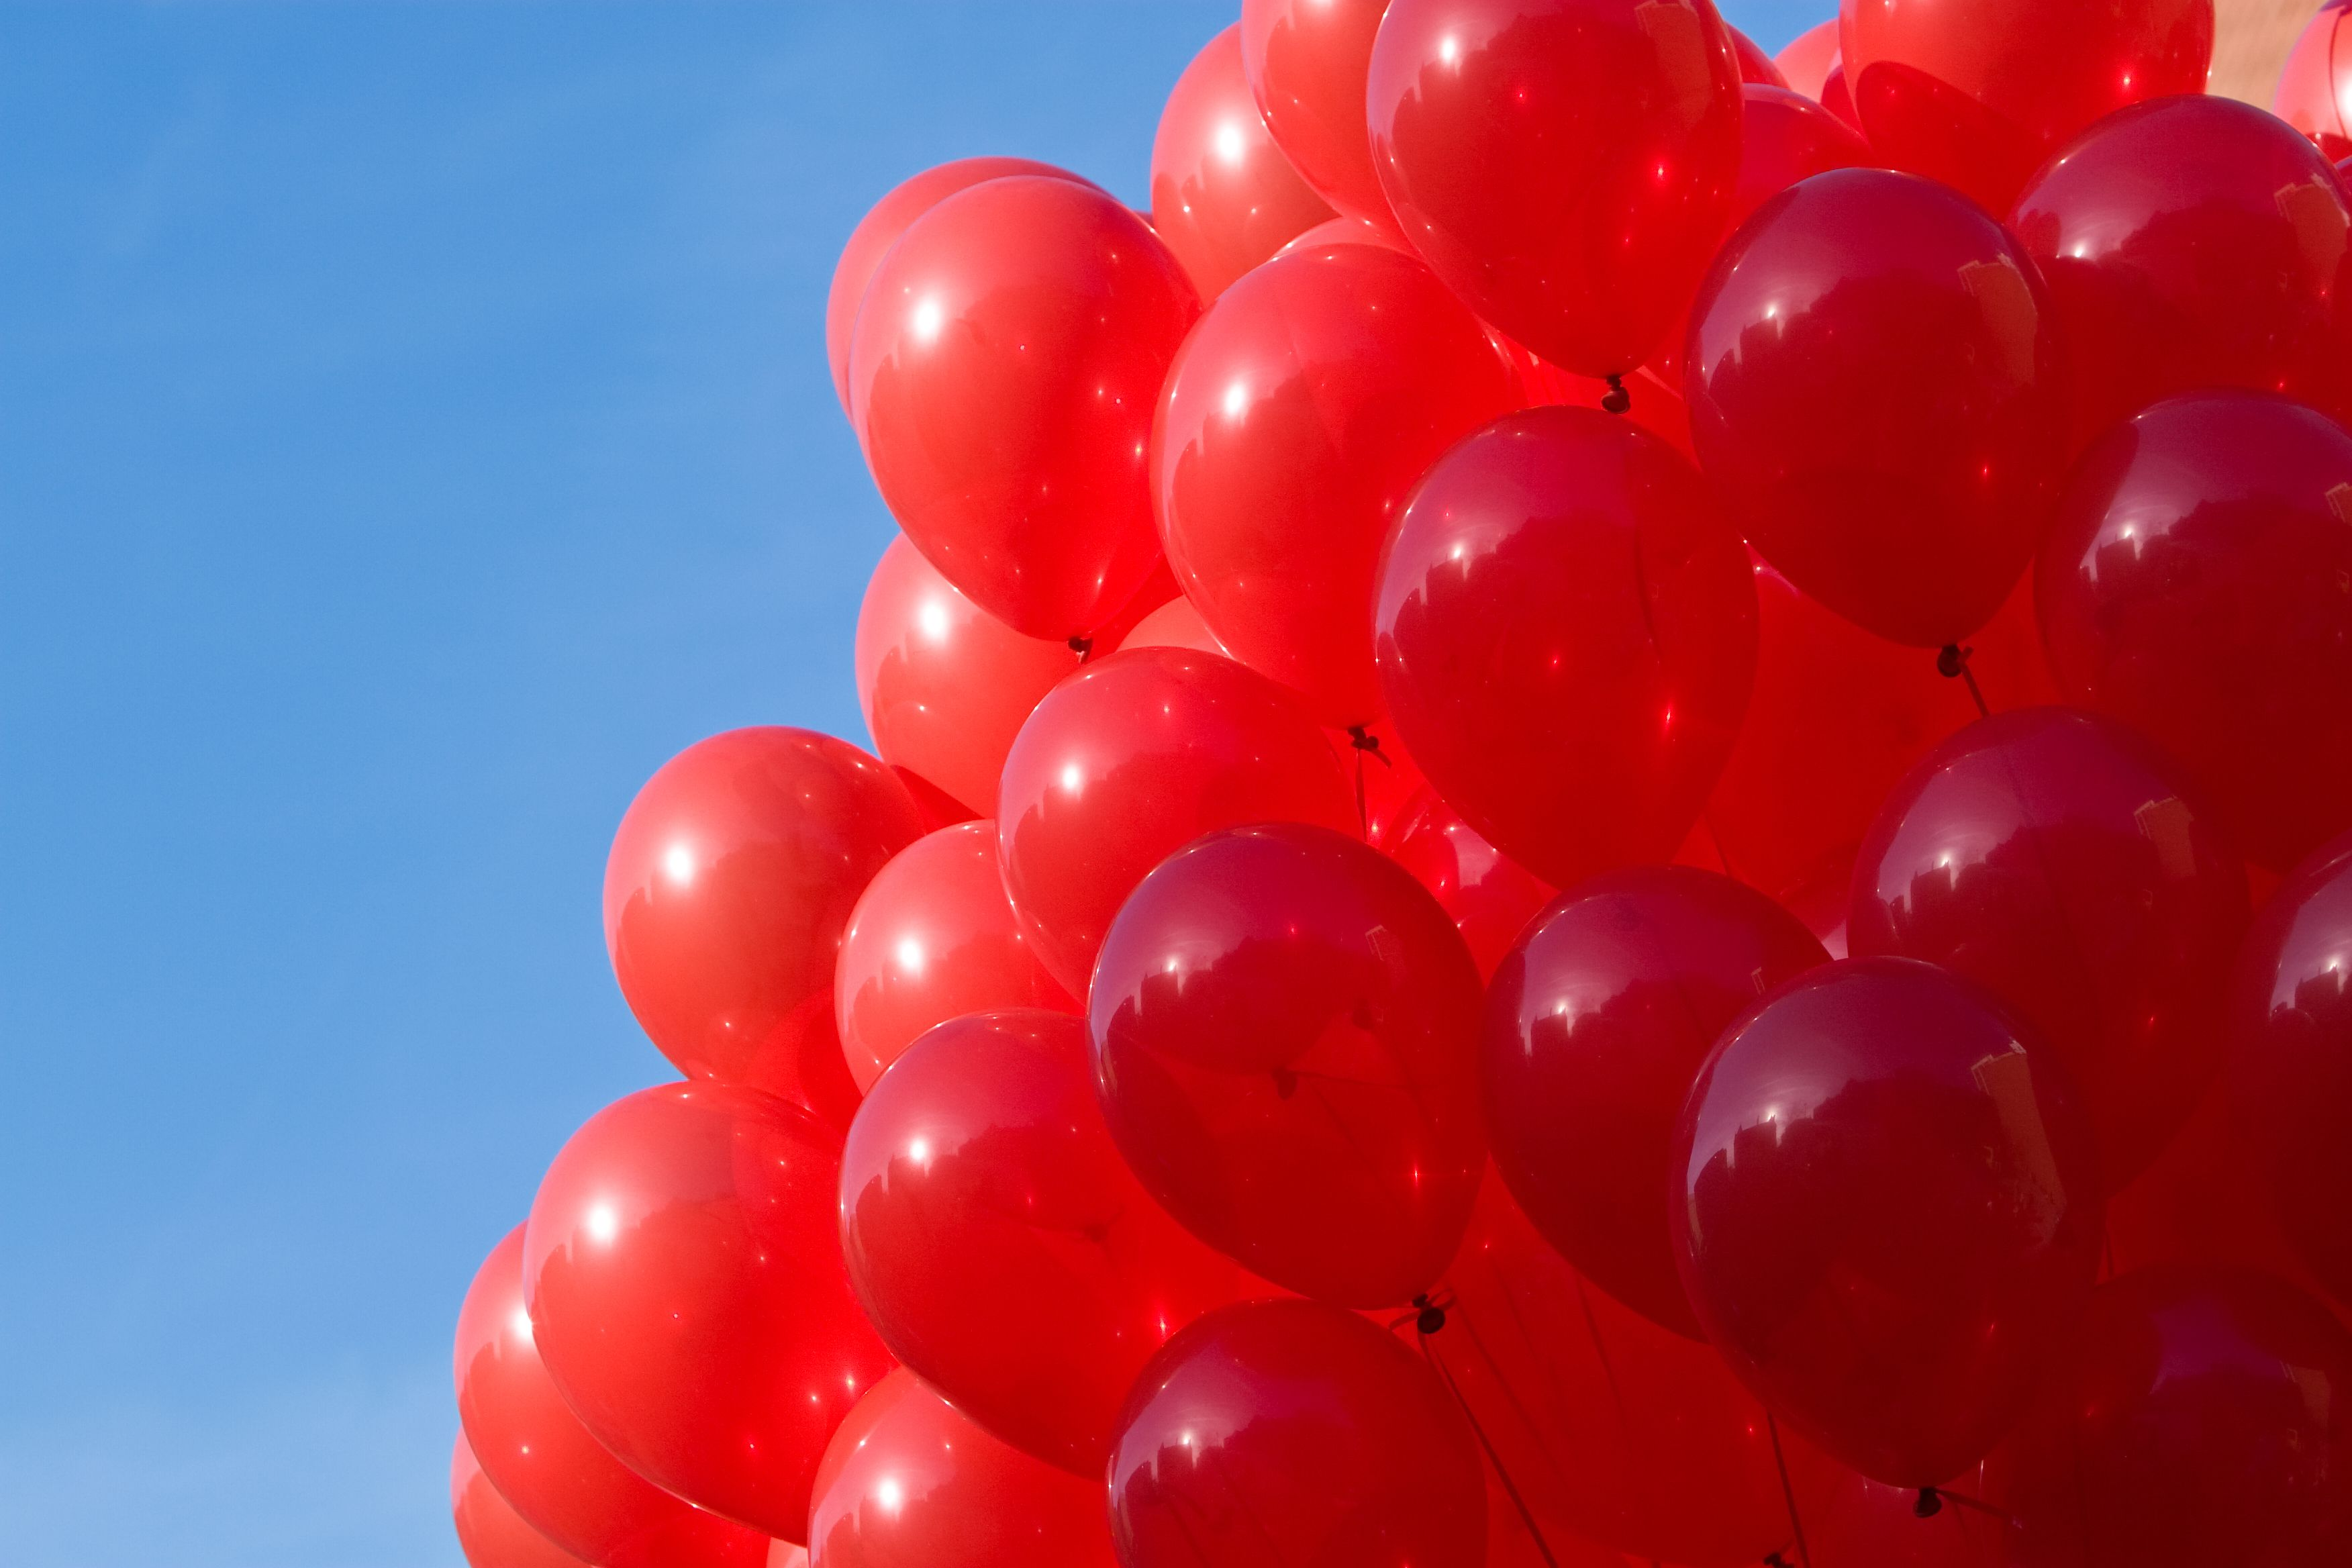 99 Red Balloons Red Balloon Balloons Photo Reference